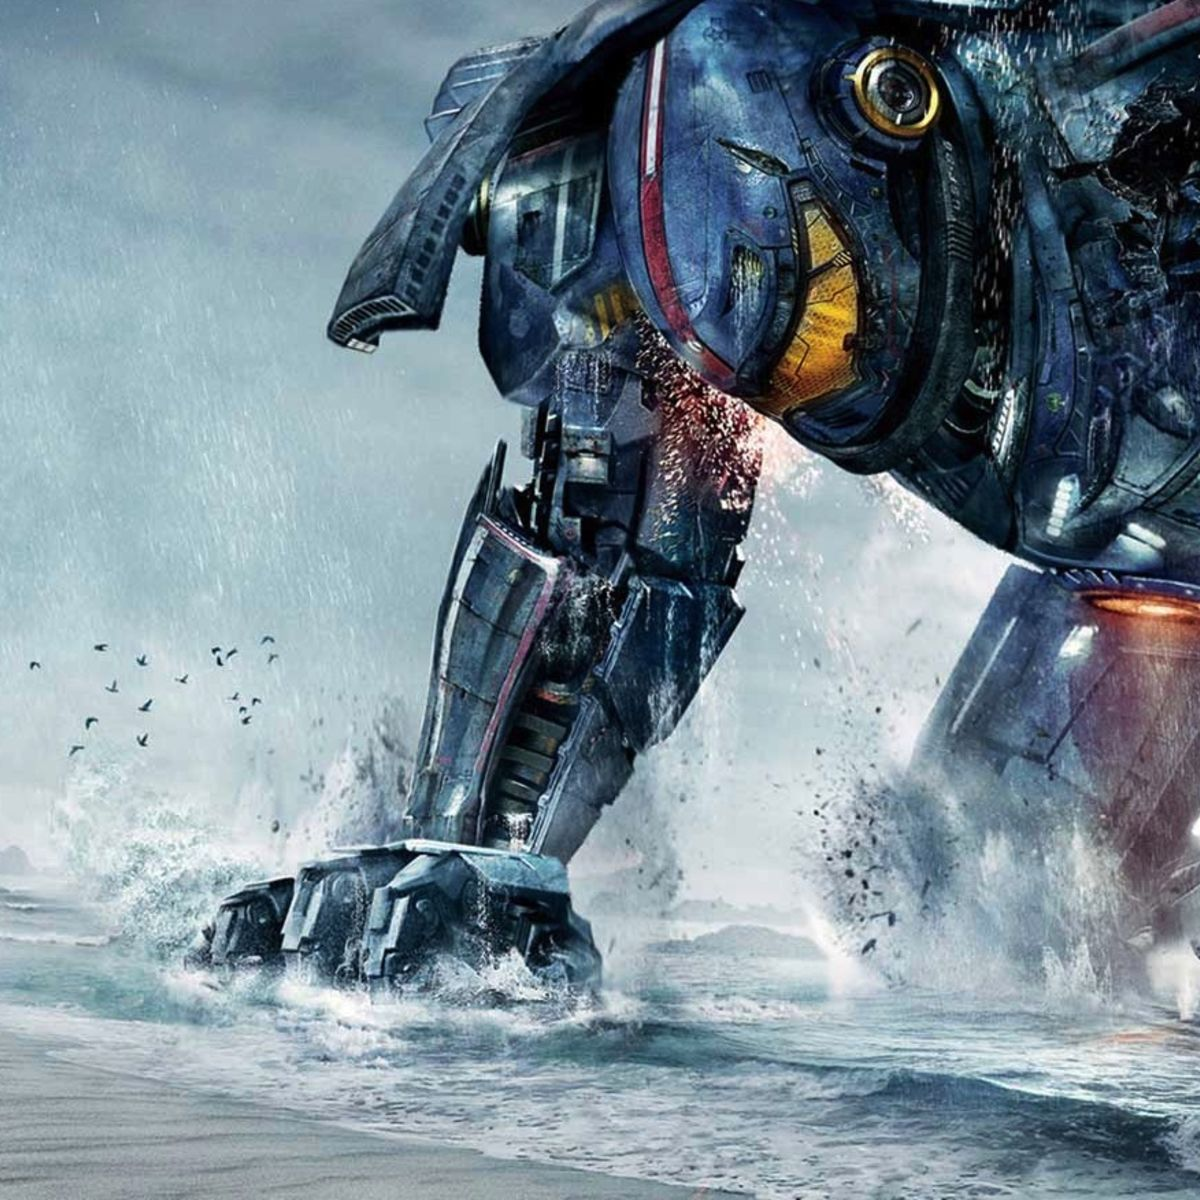 best-pacific-rim-wallpapers-hd-wide-pacific-rim-wallpapers-backgrounds-free-online.jpg